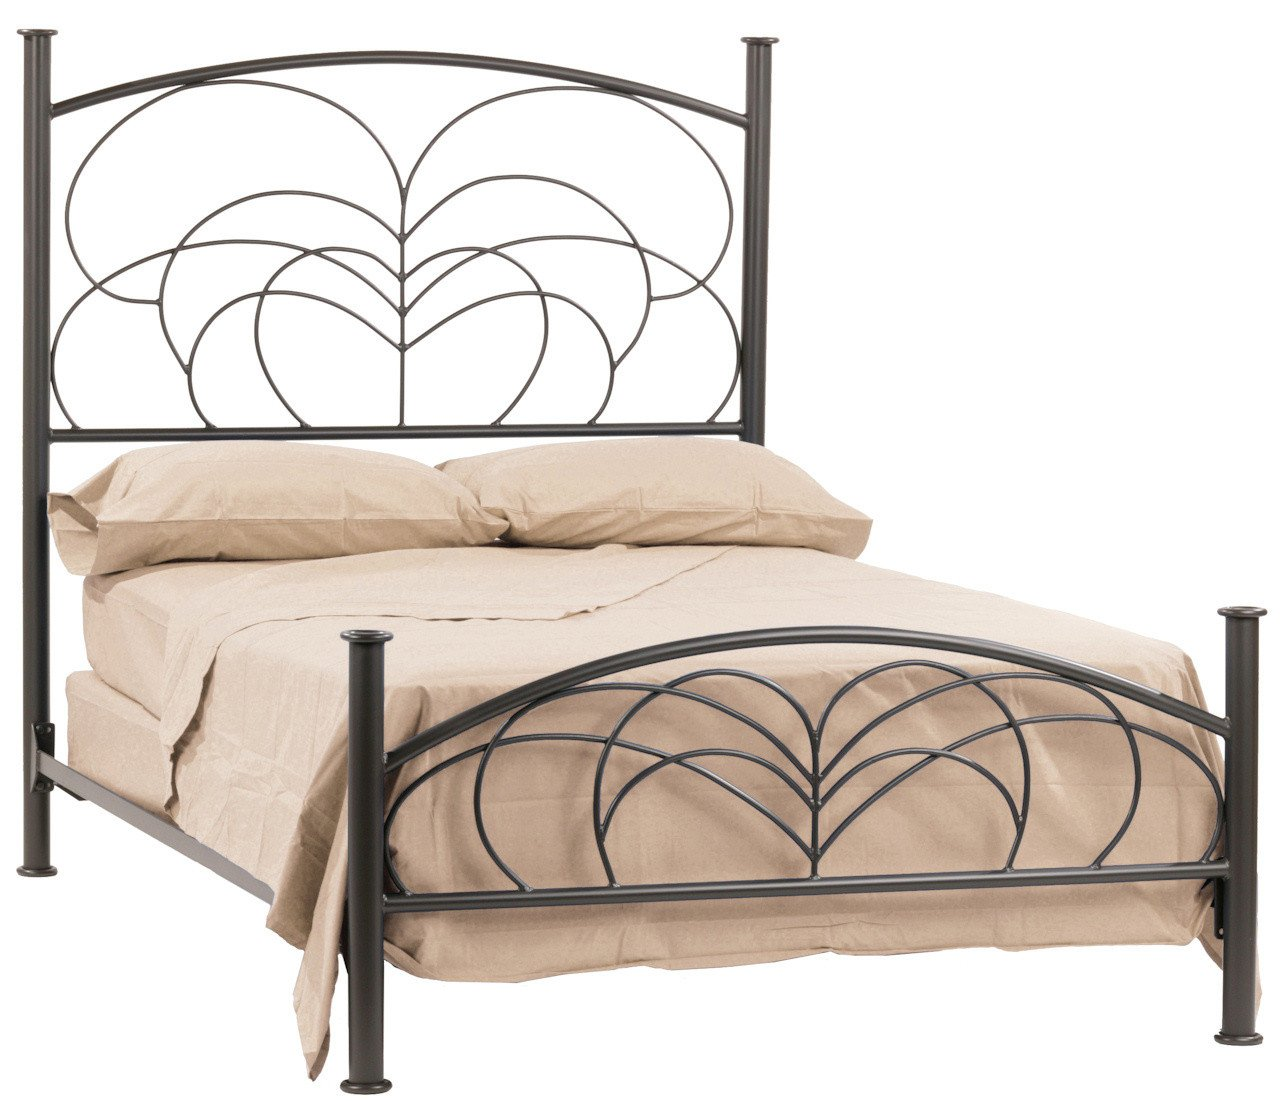 Stone County King Bed Willow